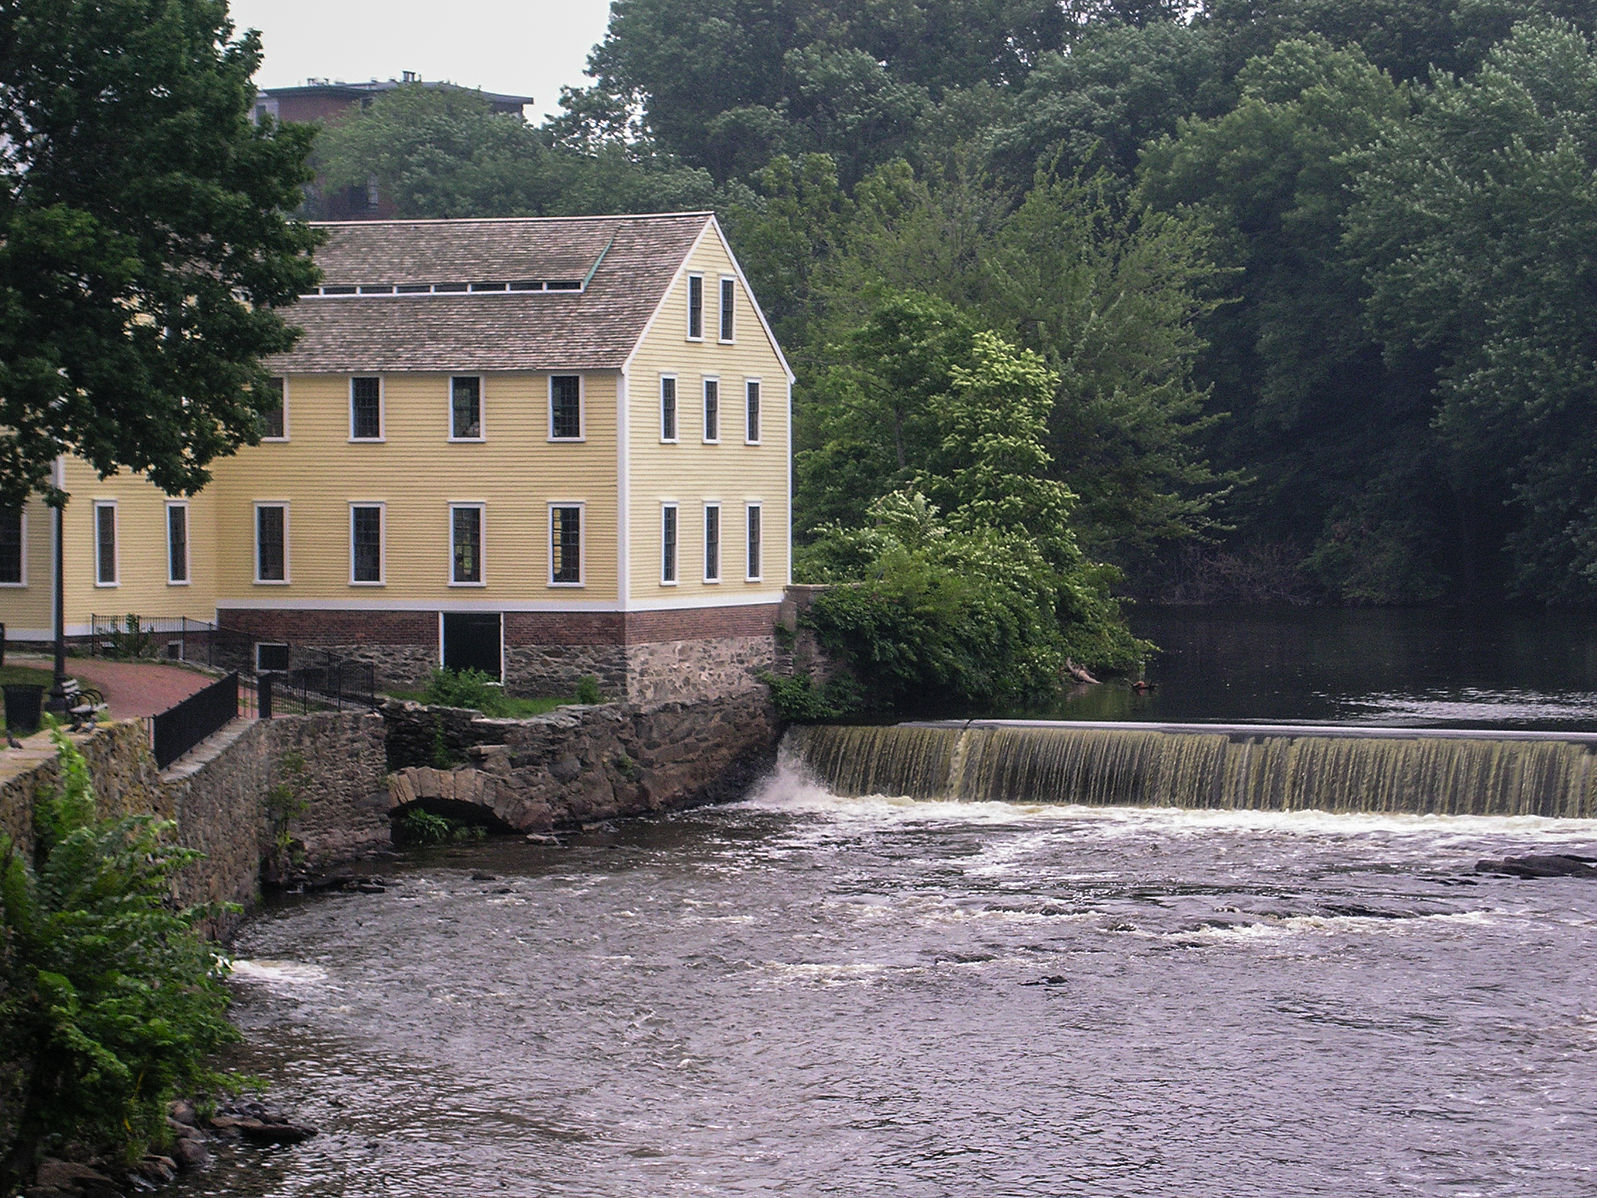 The Slater Mill, Pawtucket, site of the first factory strike in U.S. history, May 26, 1824